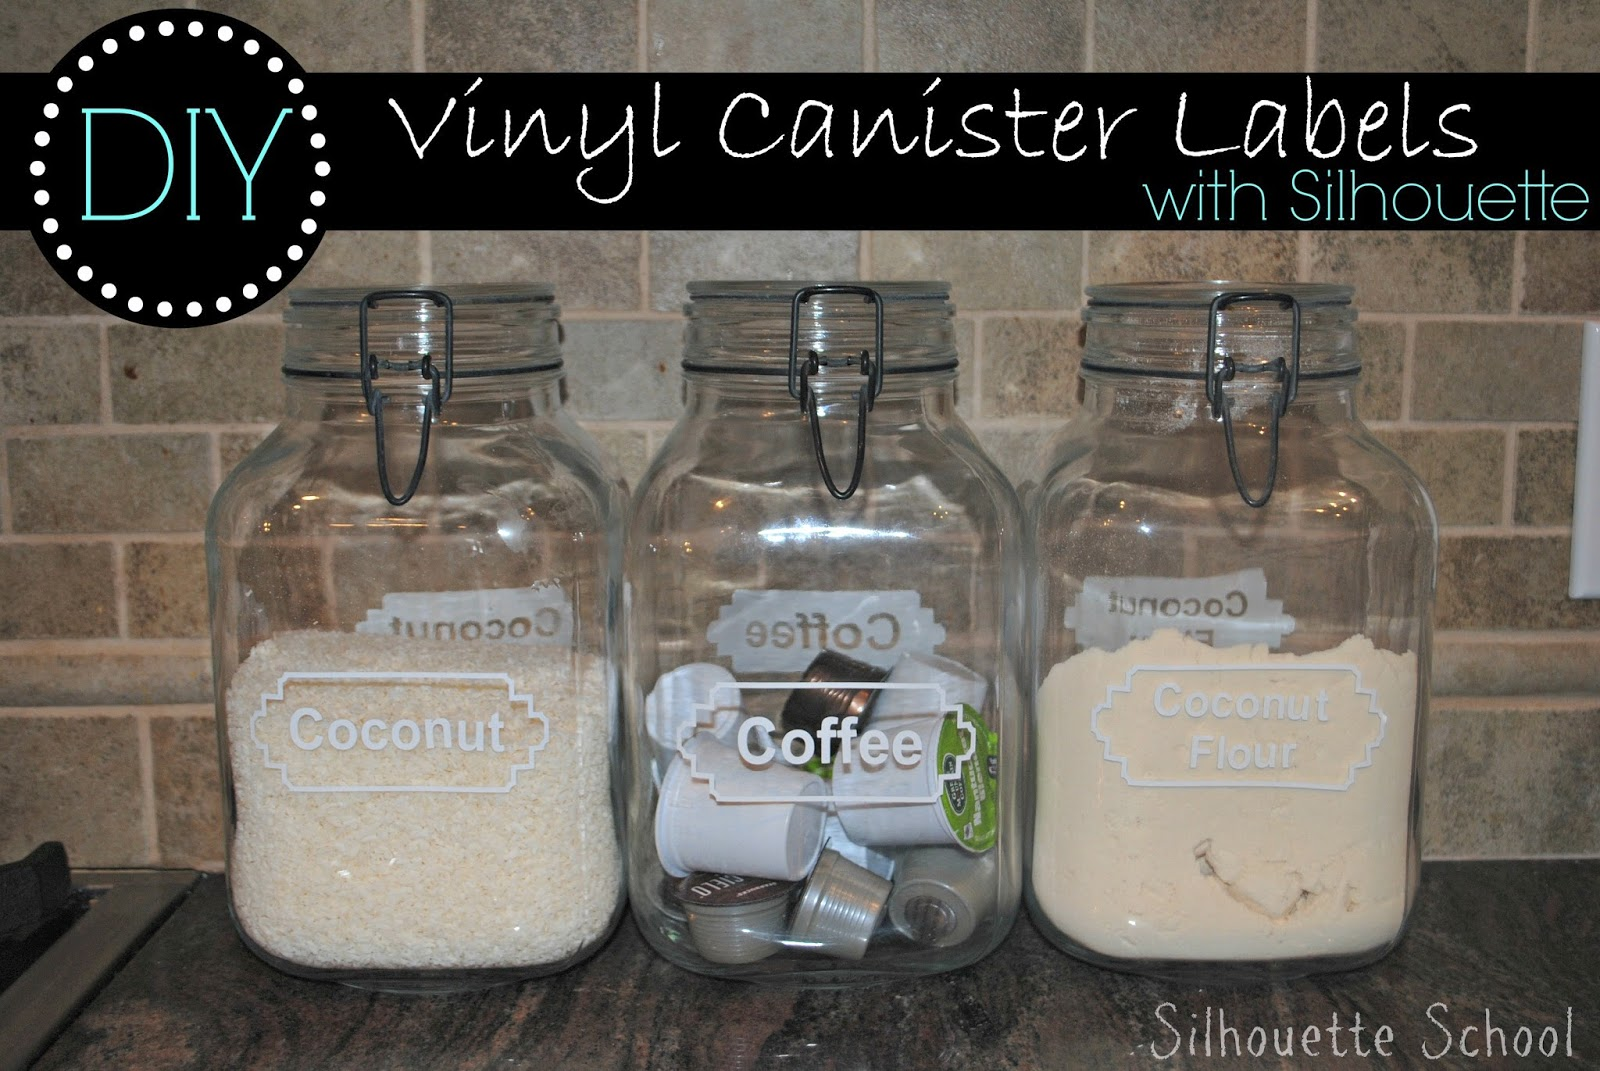 diy kitchen canister labels free silhouette studio file